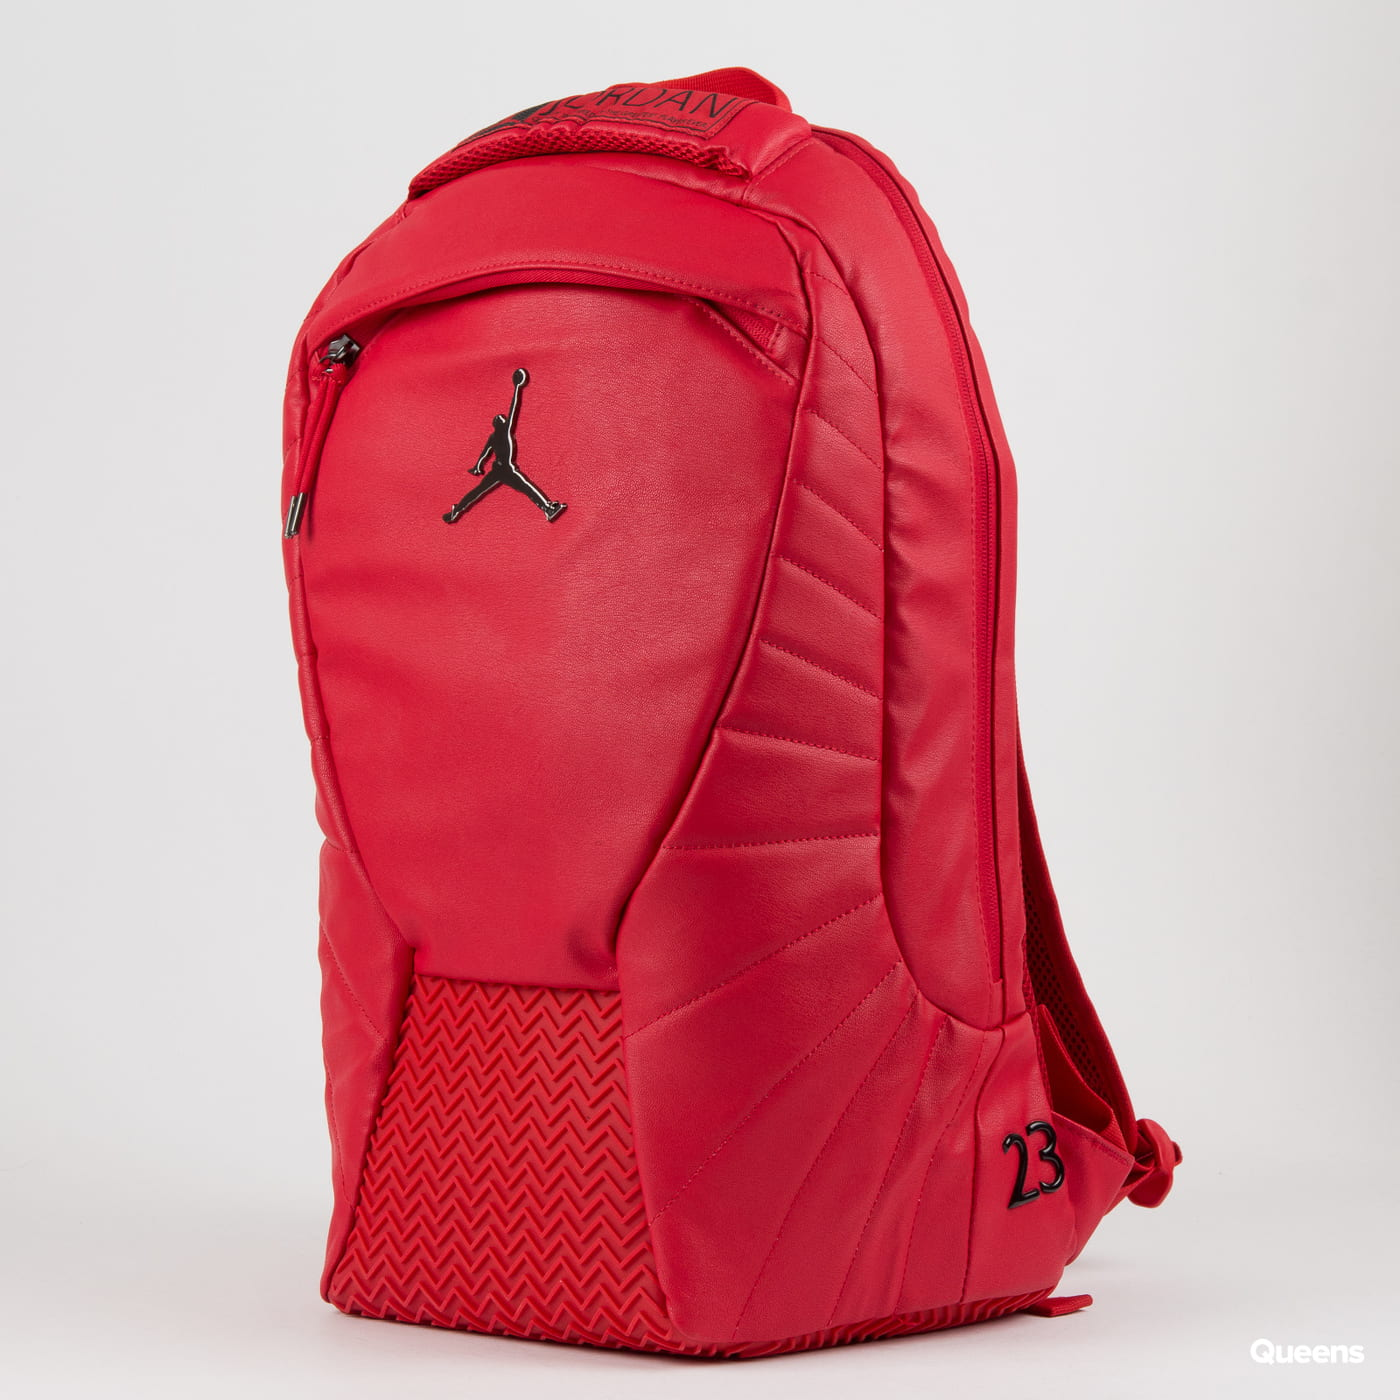 reputable site 1b871 58edb Jordan Air Jordan Retro 12 Backpack red